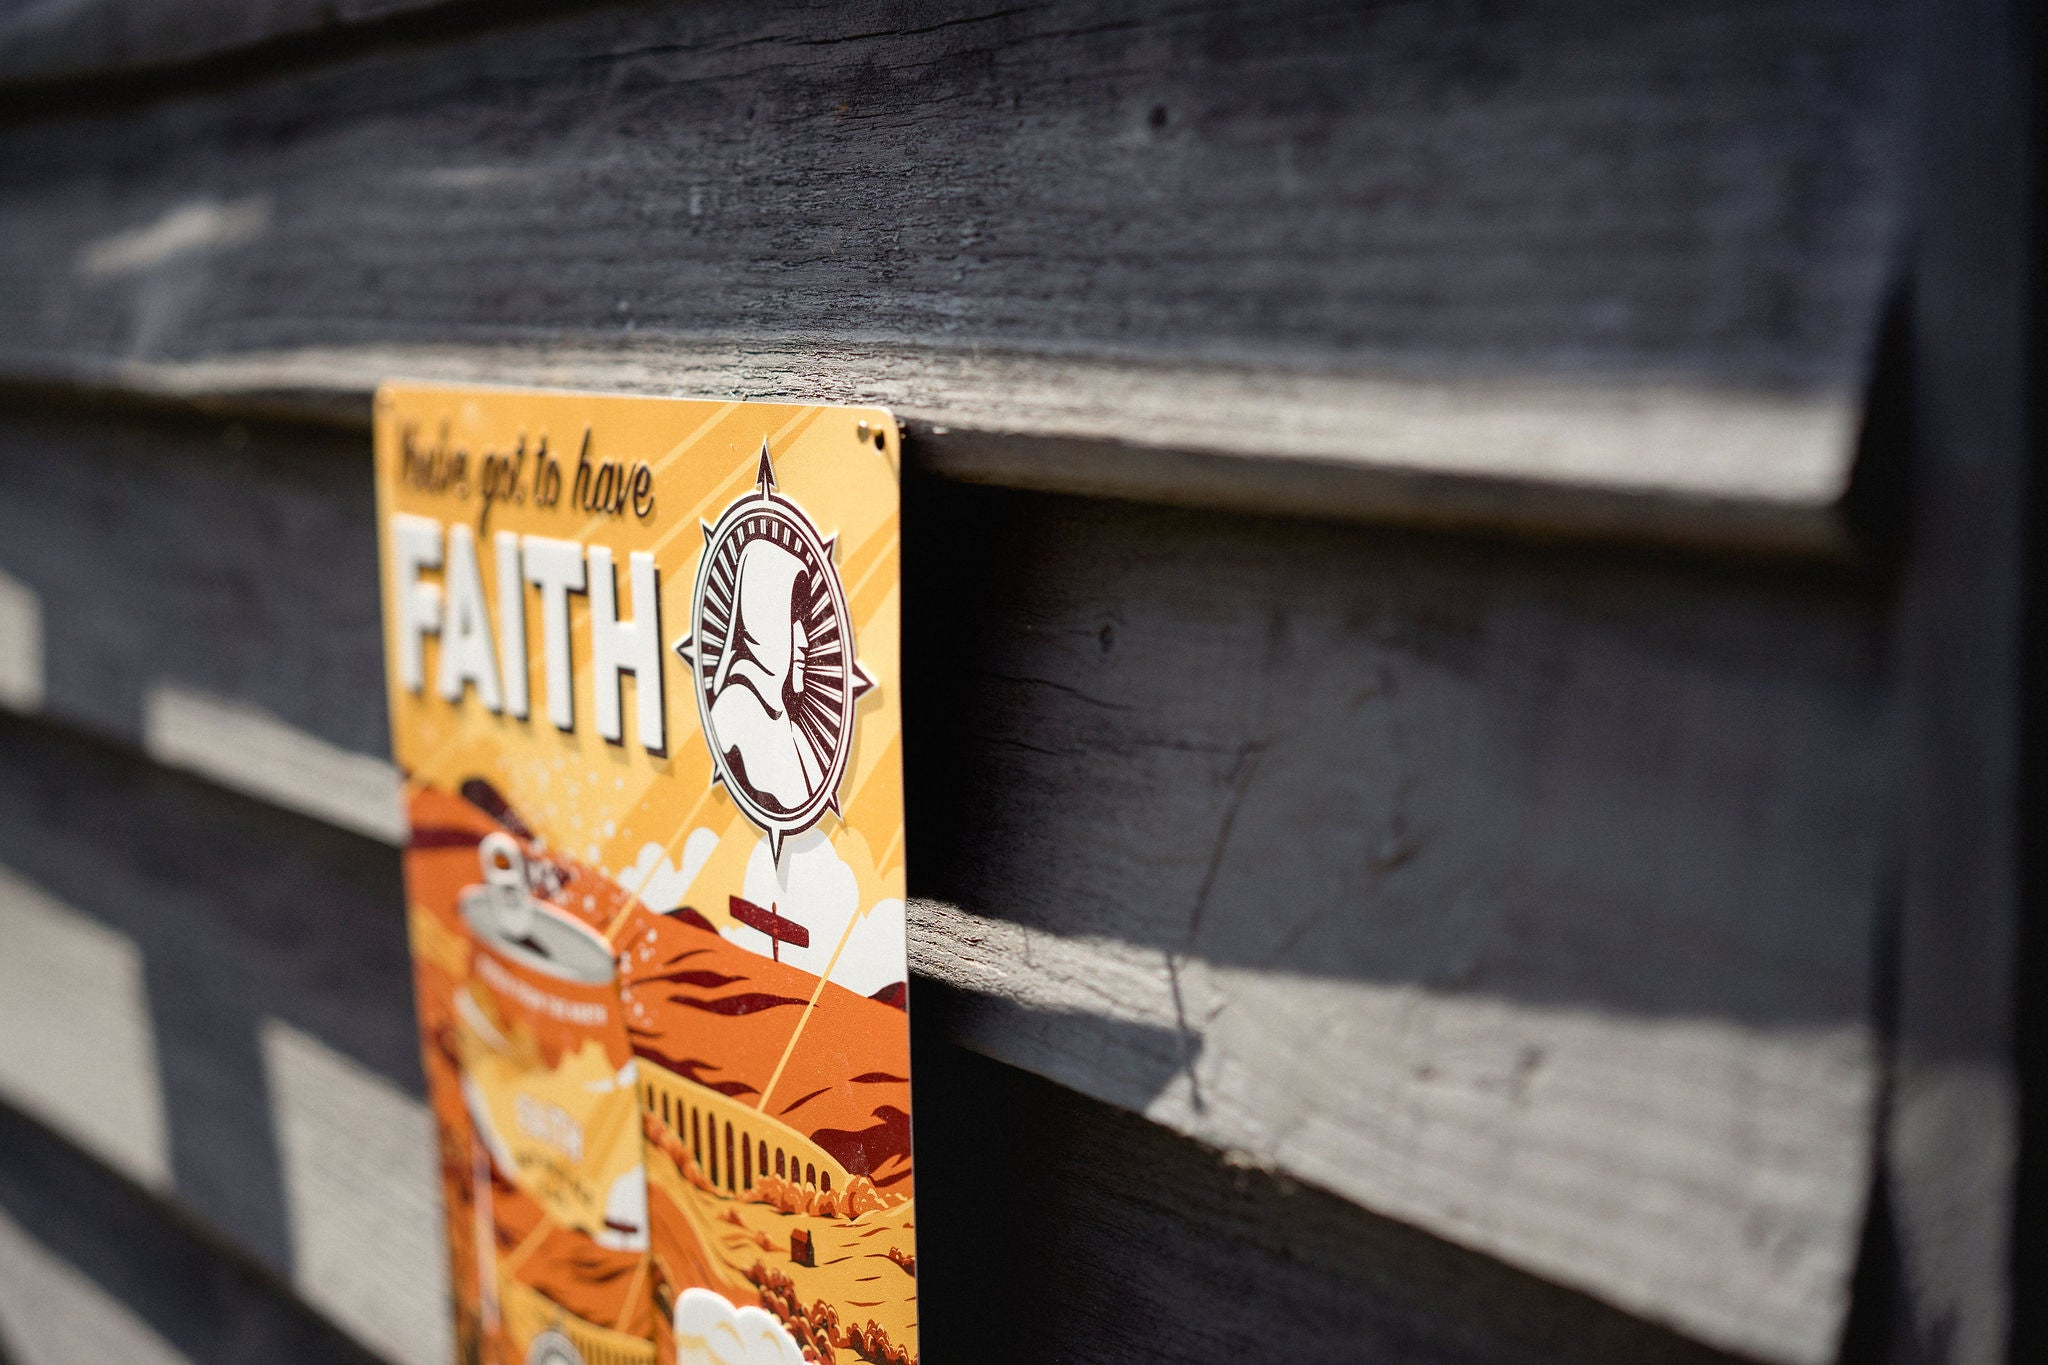 YOU'VE GOT TO HAVE FAITH EMBOSSED SIGN